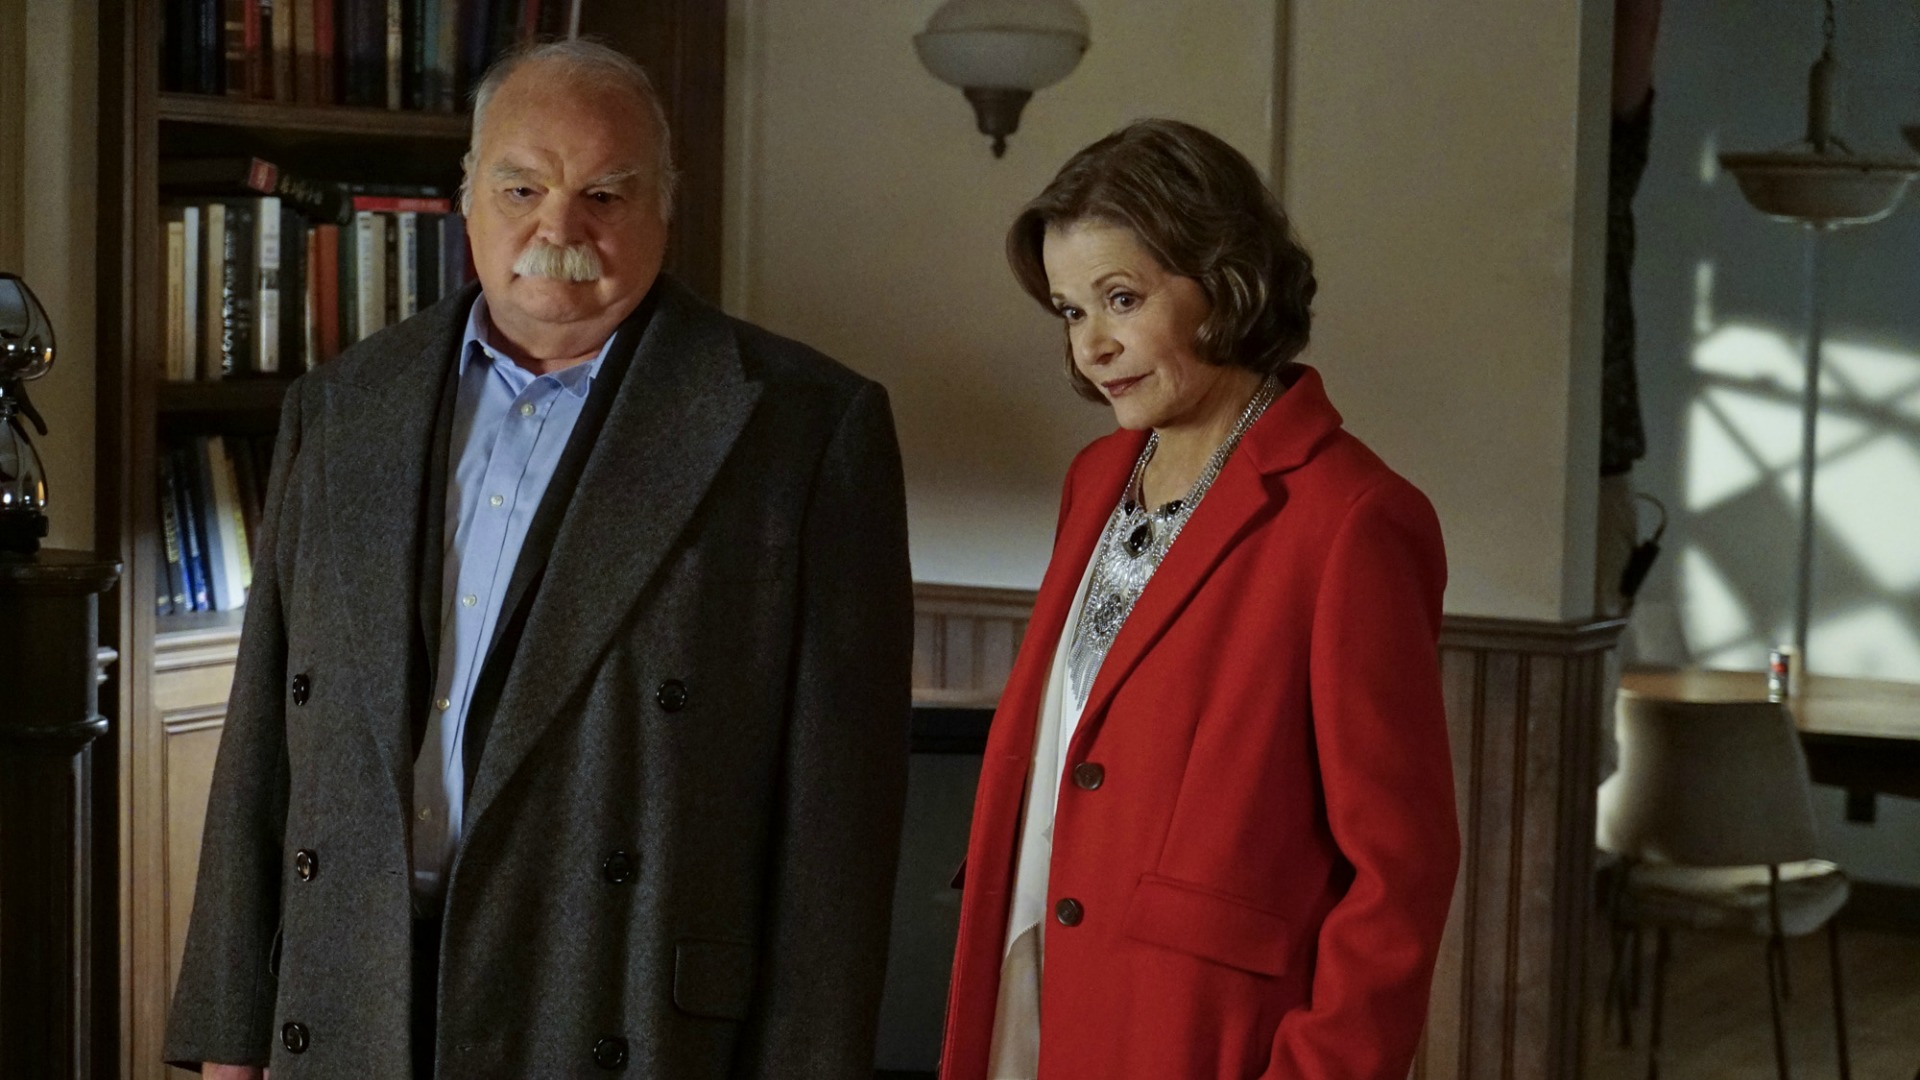 Richard Riehle as Walt Osorio